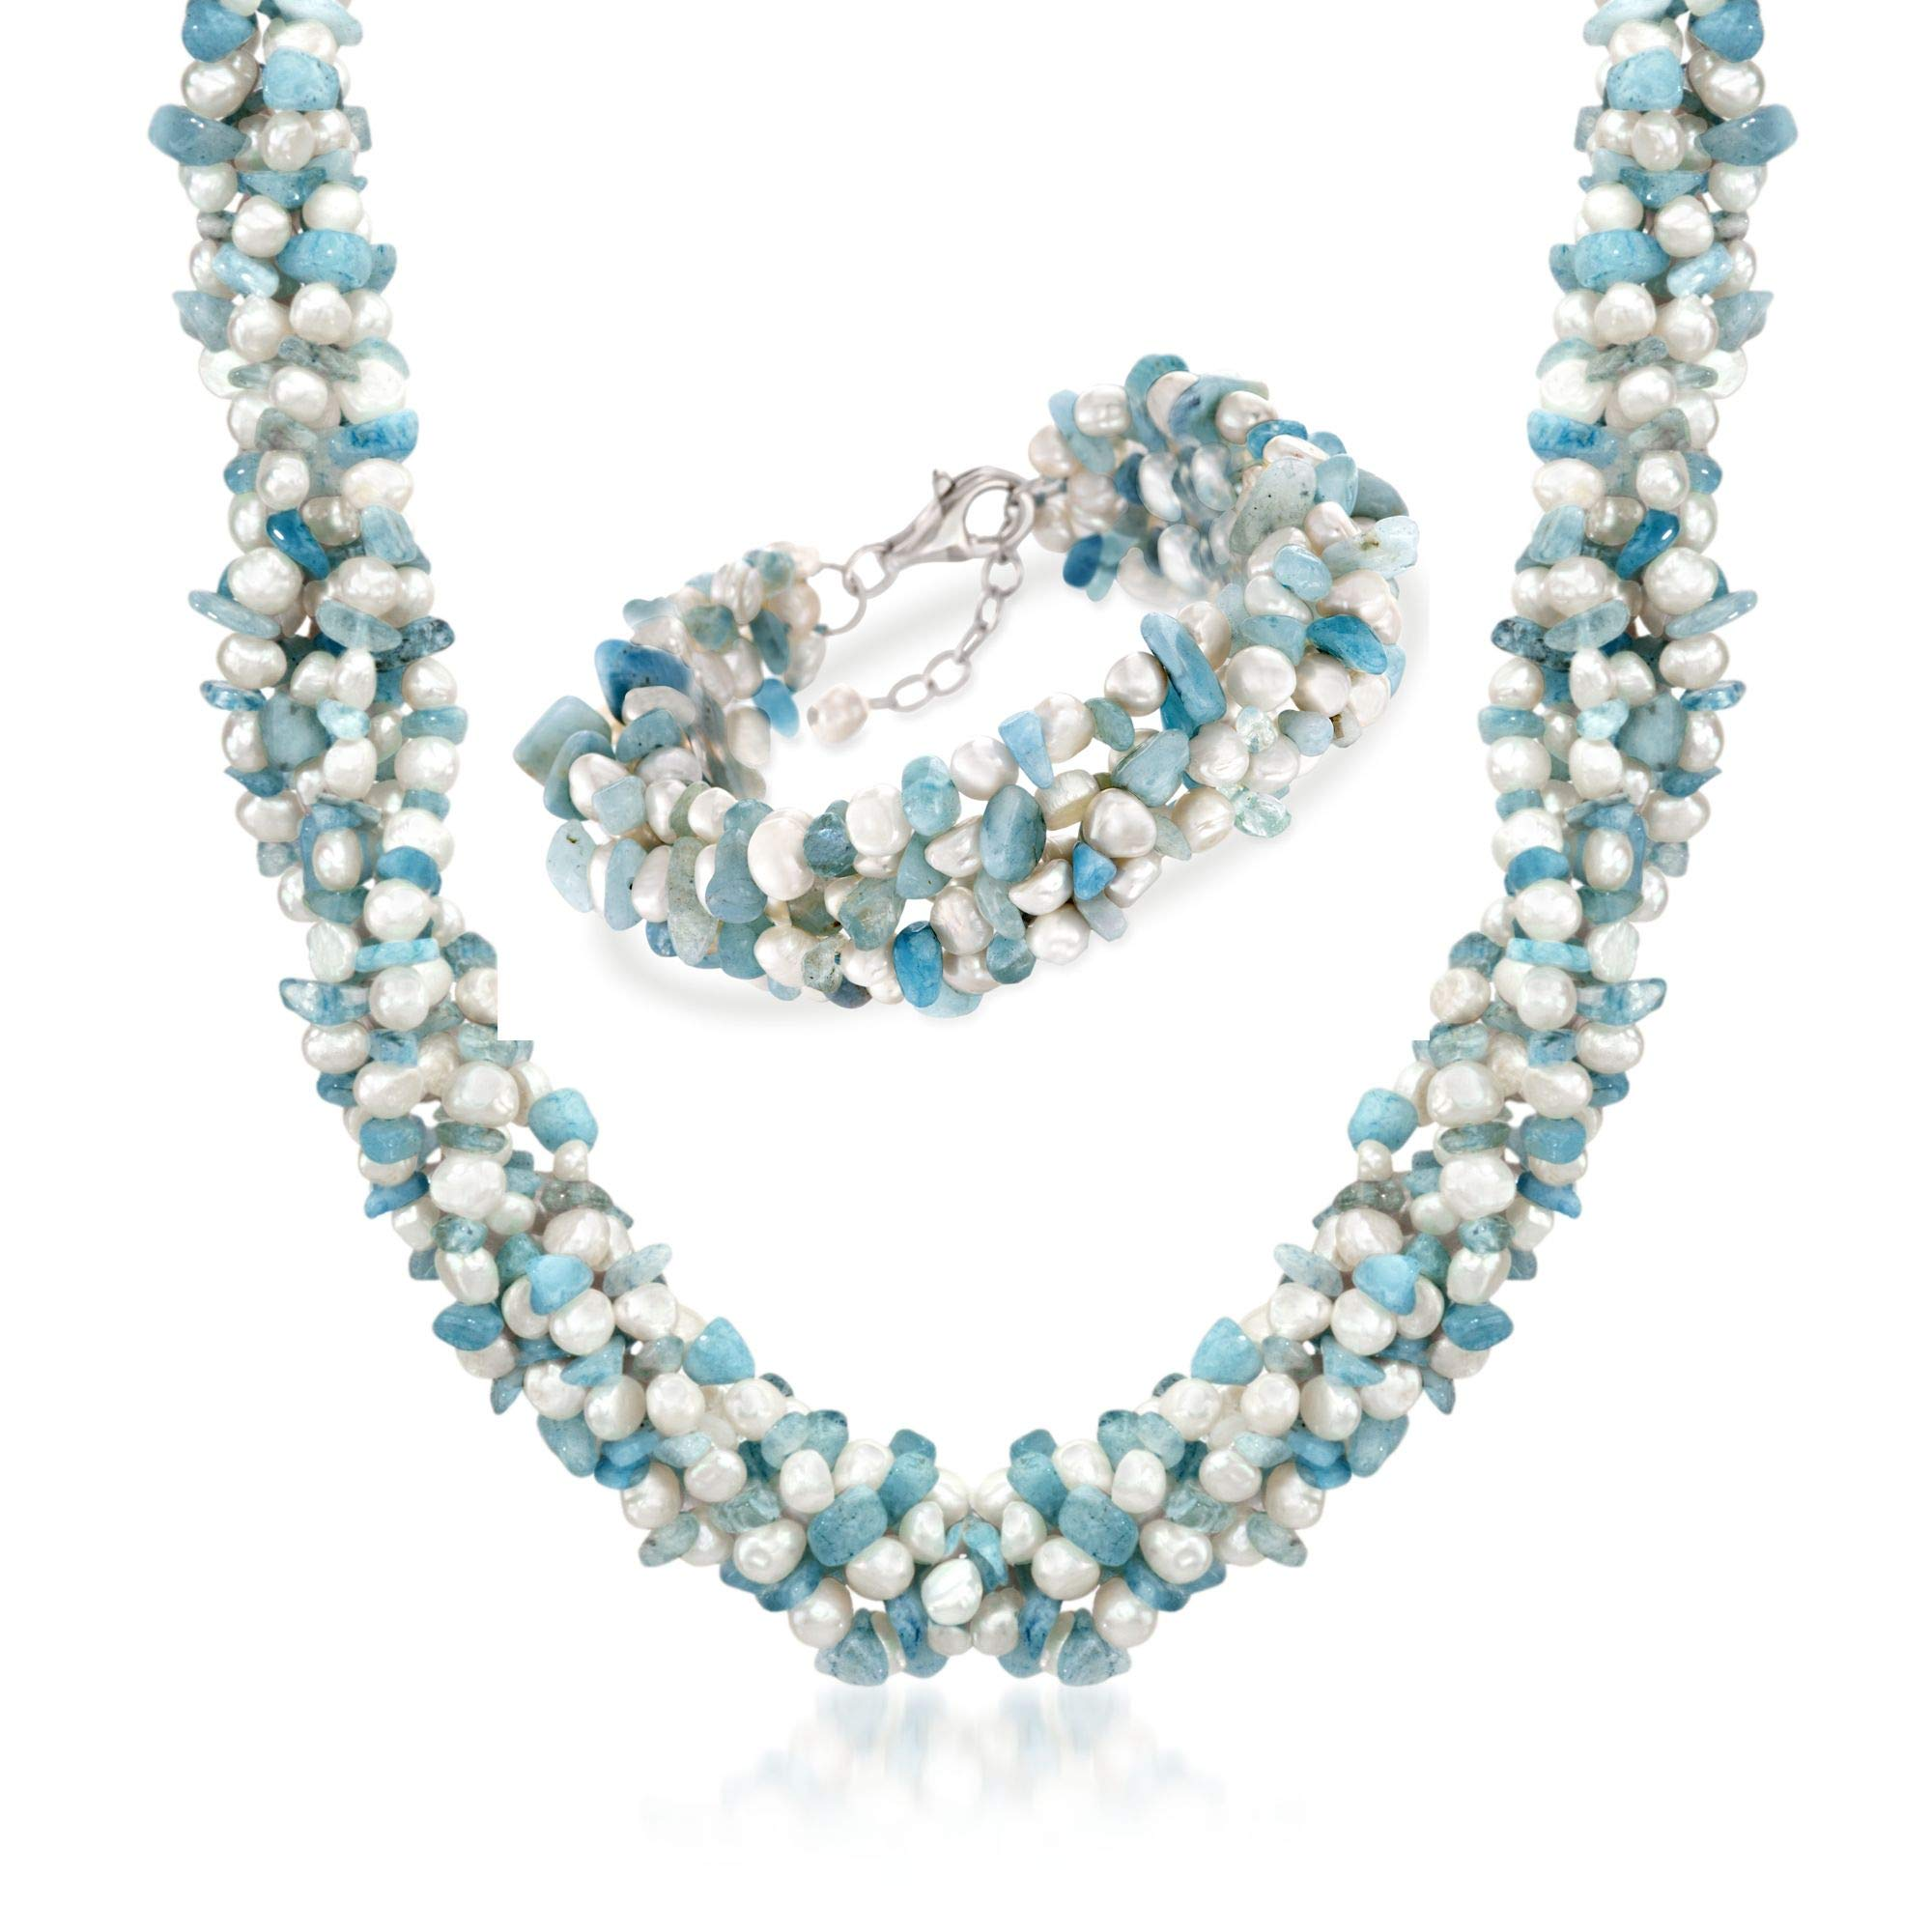 Ross-Simons Aquamarine Bead and 5-6mm Cultured Pearl Torsade Necklace With Free Bracelet